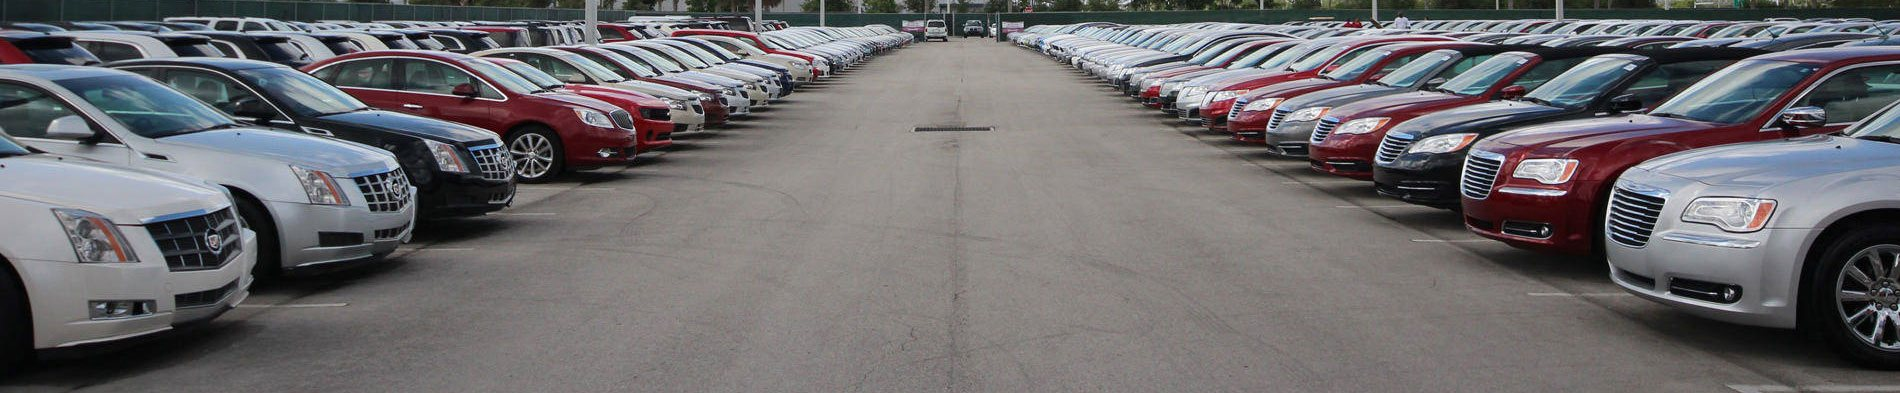 Used cars for sale in West Haven